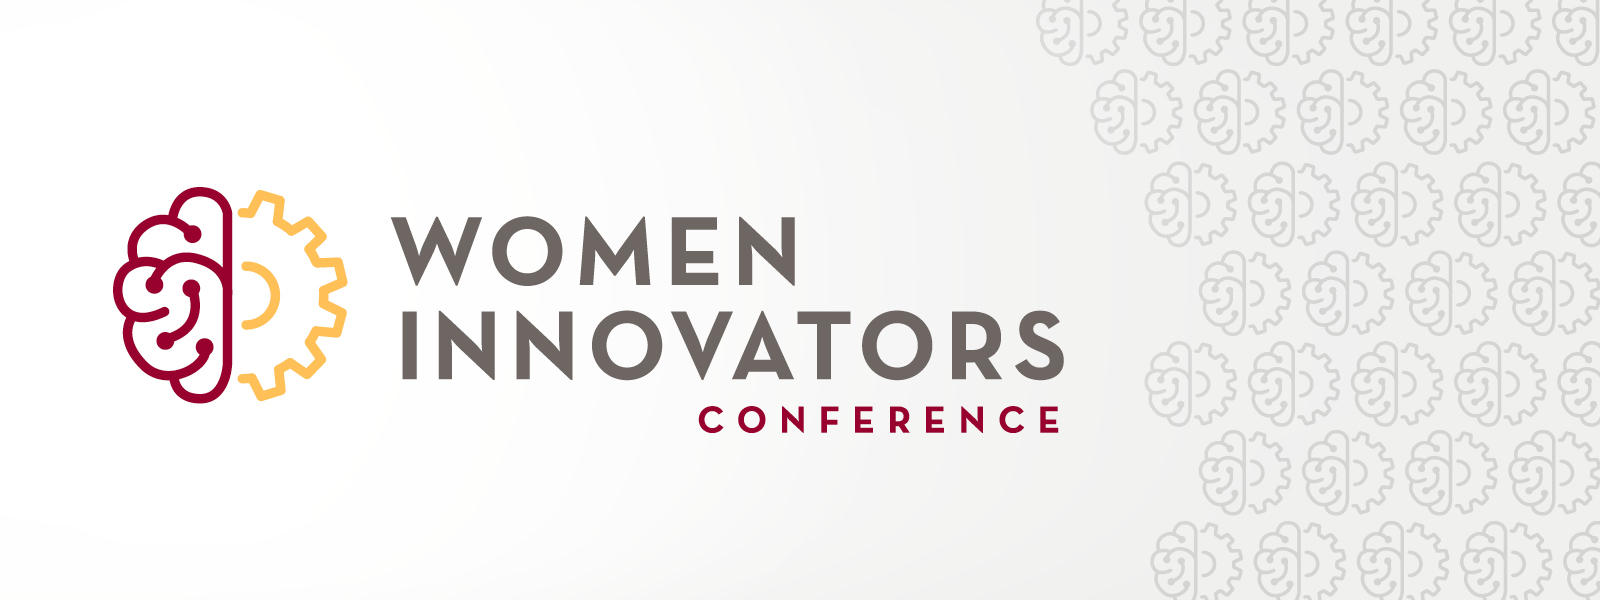 Women Innovators Conference